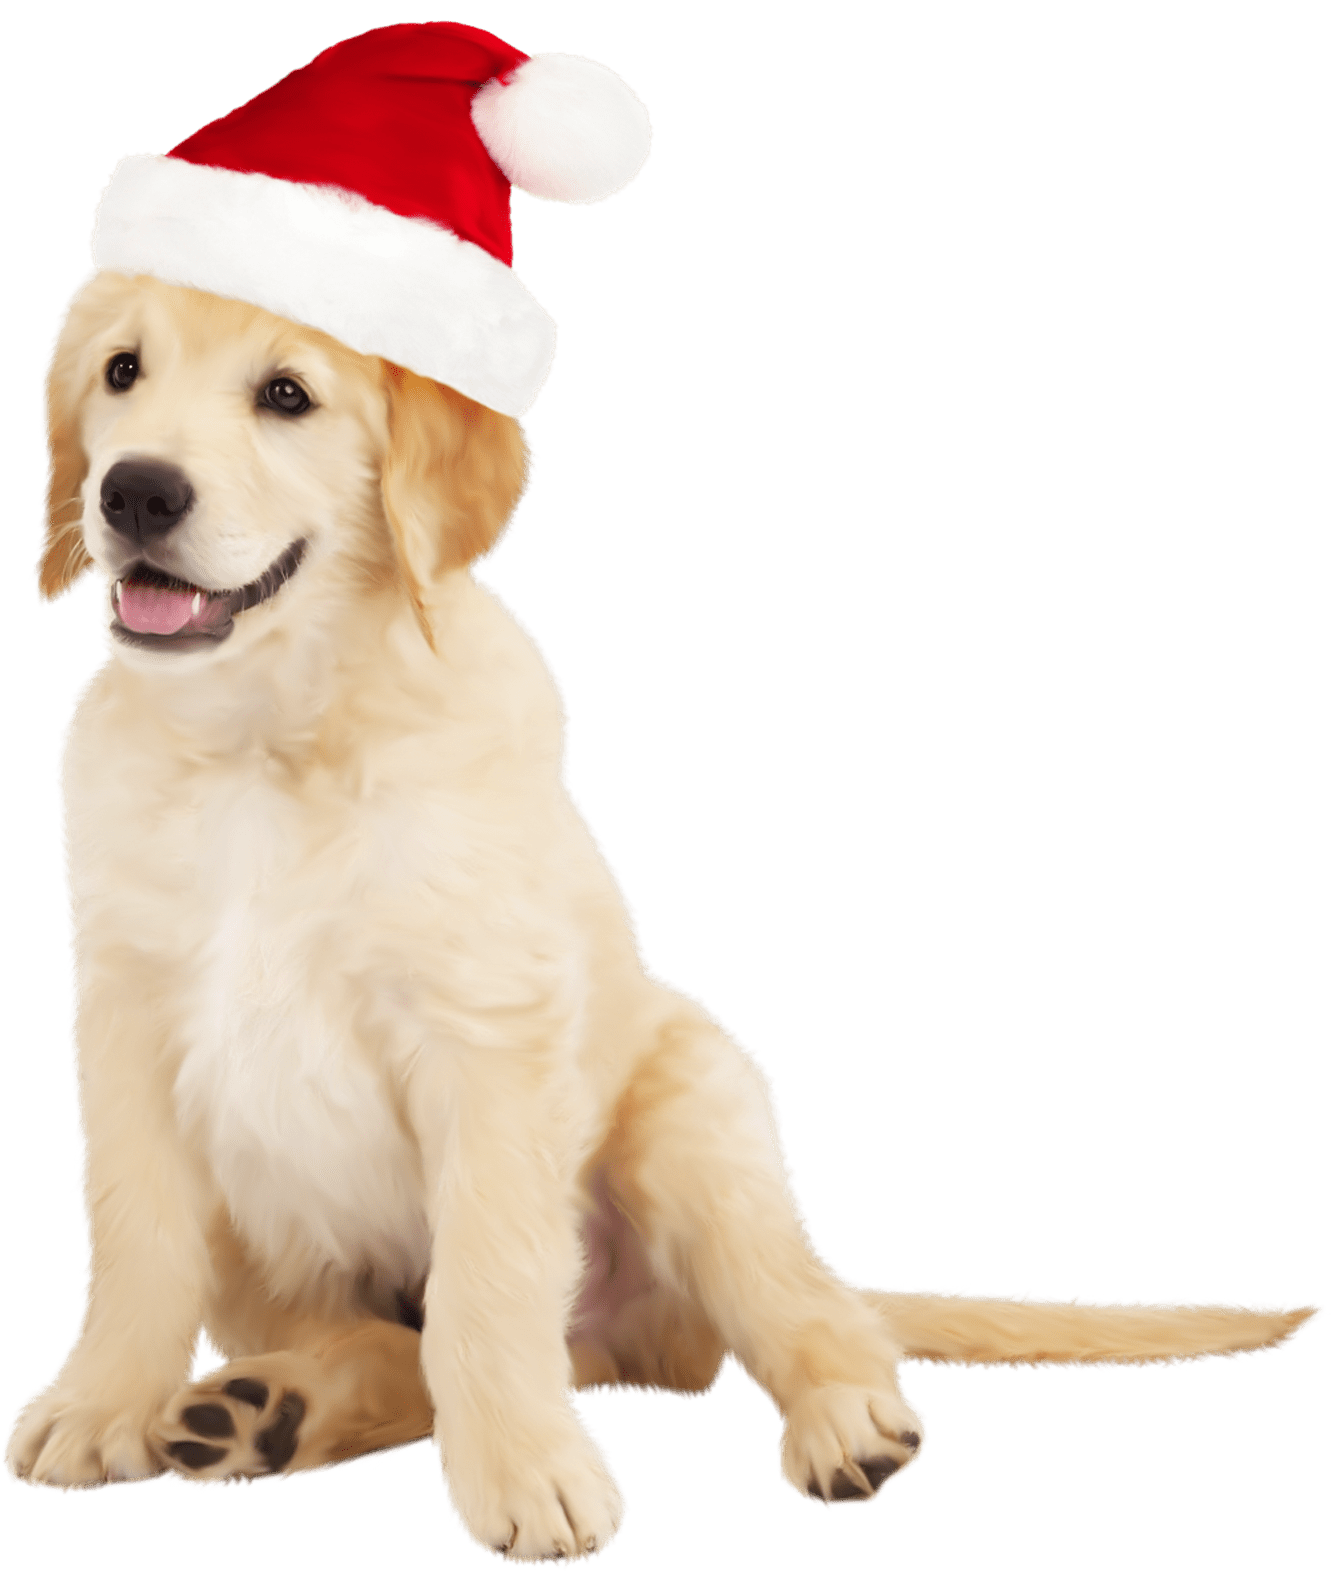 Cute Labrador Puppy Wallpaper Cute Dog With Santa Hat Png Clipart Best Web Clipart